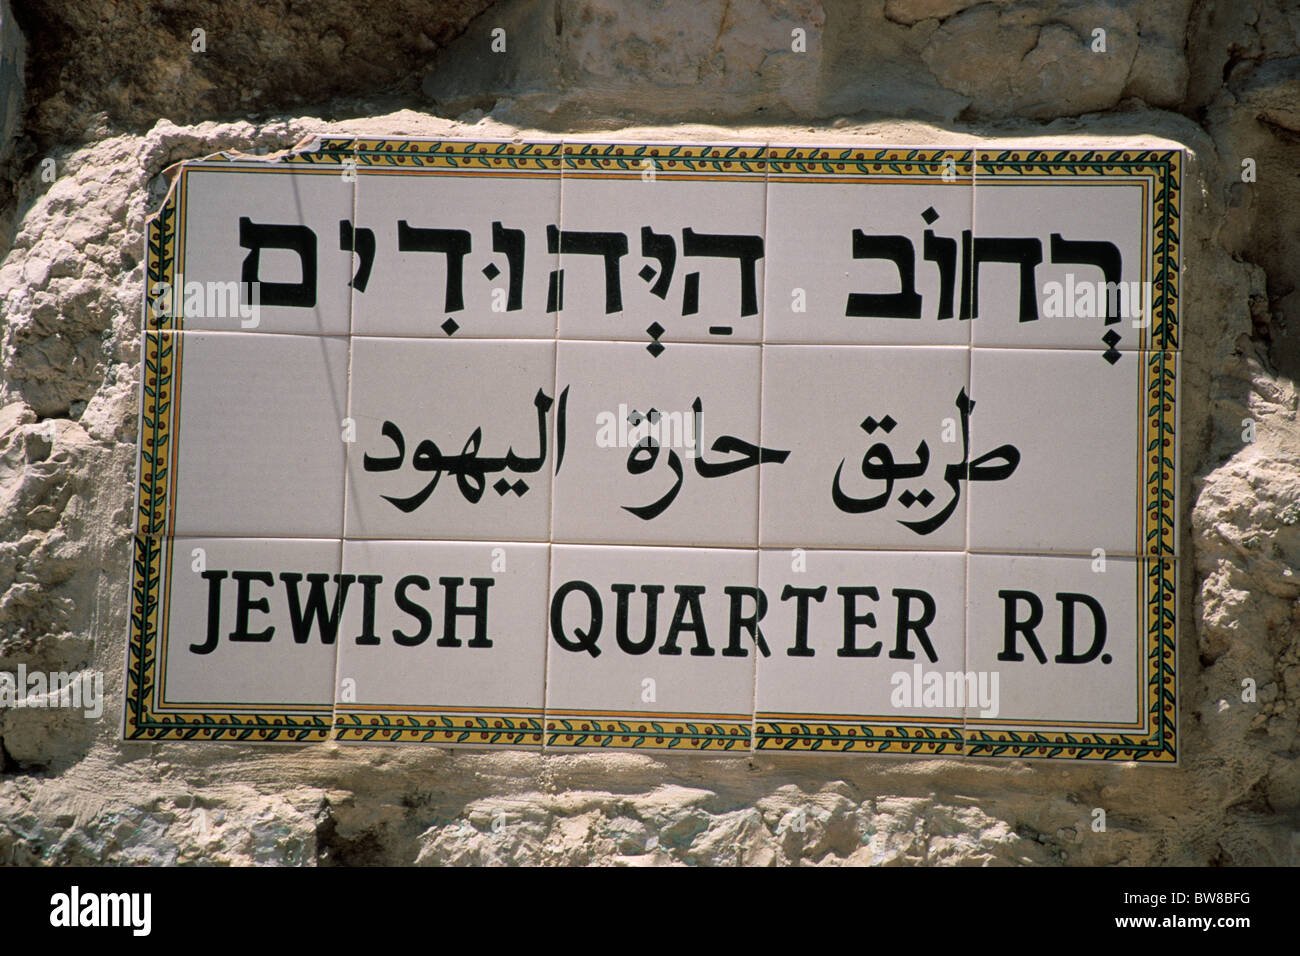 Street sign in Hebrew, Arabic and English languages in Old Jerusalem Israel - Stock Image